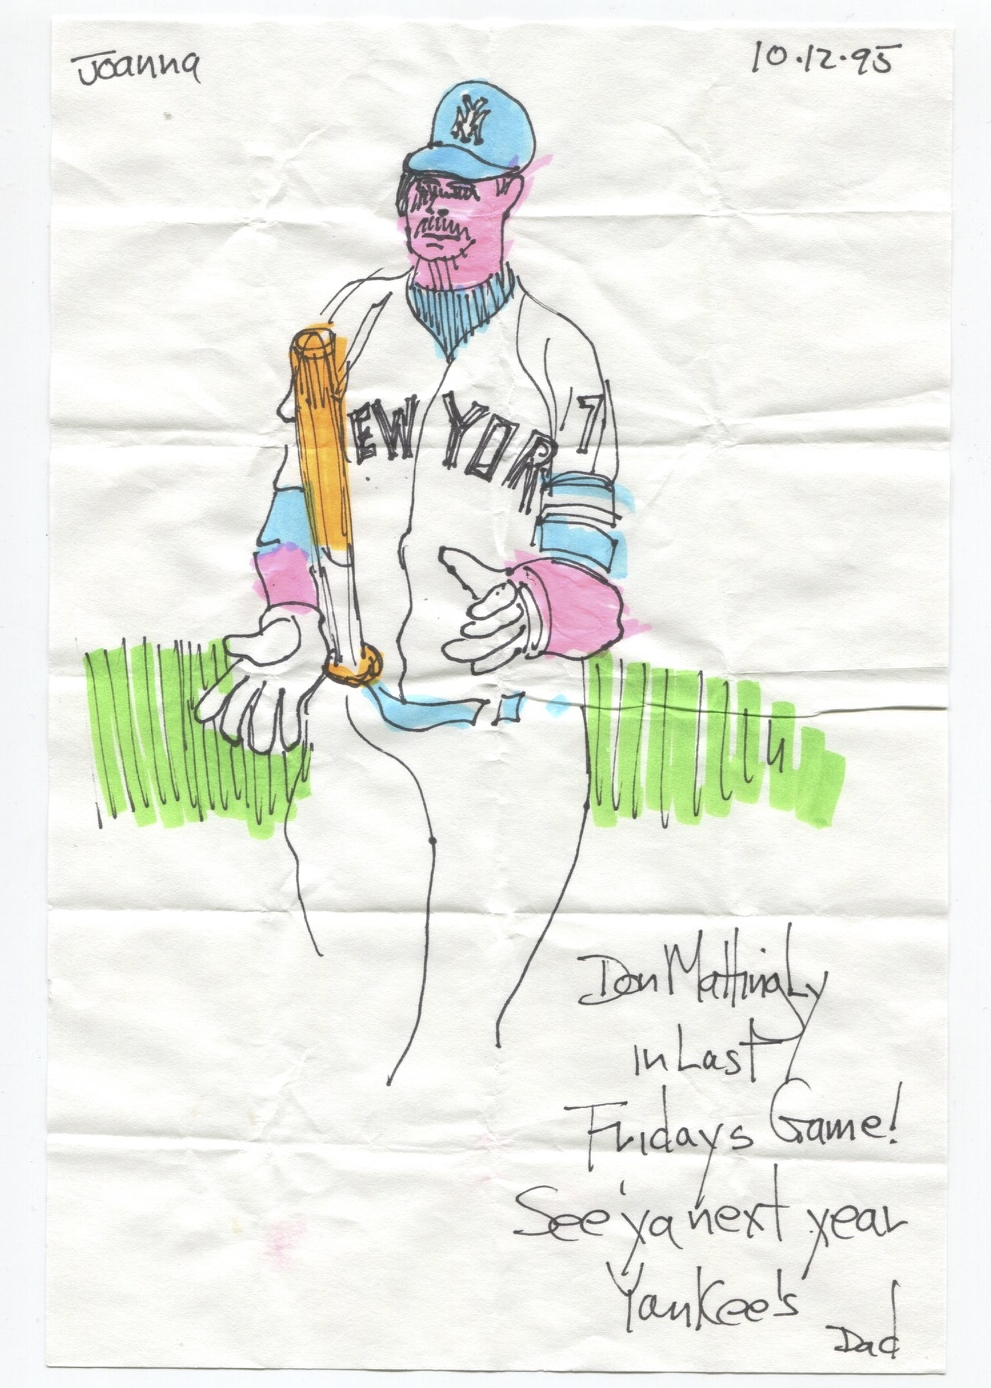 Don Mattingly in last Friday's game! See 'ya next year Yankees.